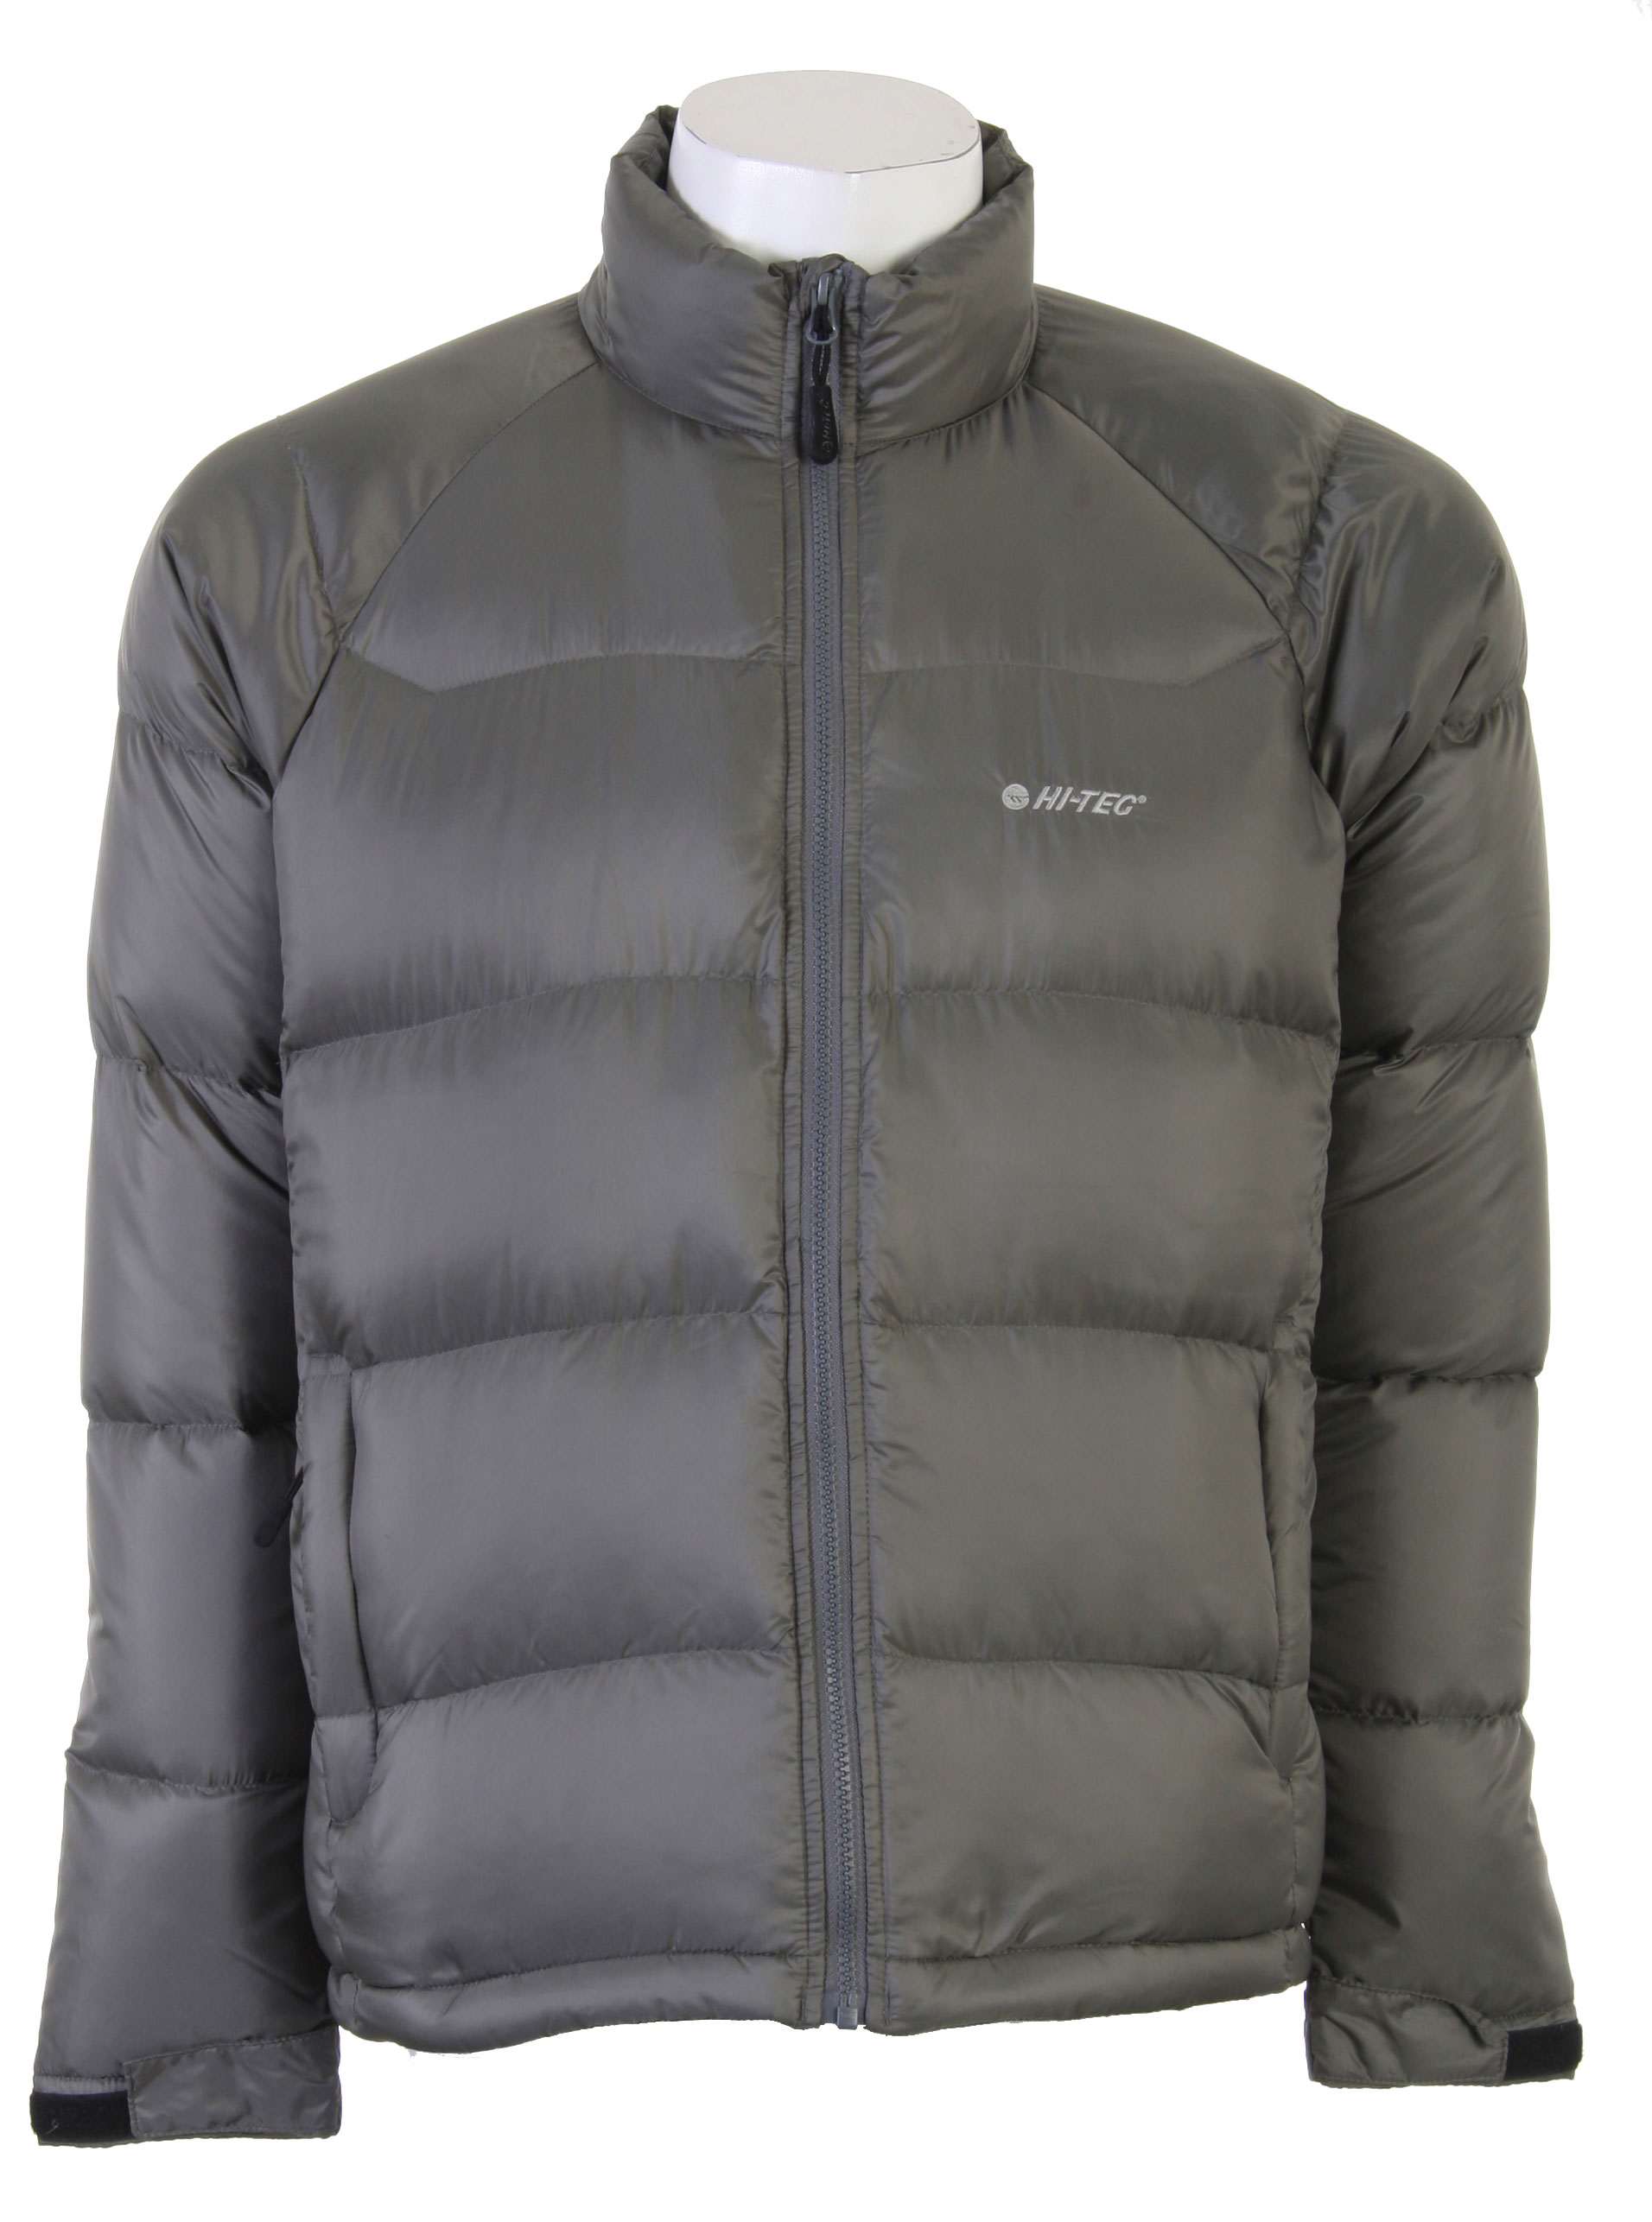 For outerwear stylish enough for the street but built to hold up to the slopes, consider the Hitec Alpine Start Parka Jacket. This puffer-style jacket in 40D Ripstop polyester, inside and out, gives you the tough weather-beating power that goes into making parachutes. Wearer comfort is ensured by down insulation to keep out the cold, plus inner and outer pockets that include zip-close hand warmers. Hitec added an easy to access drawcord at the hem of the Alpine Start Parka for single-handed adjustment when you've got your hands full having fun in the snow.Key Features of the Hitec Alpine Start Parka Jacket: 2 Zippered Hand Warmer Pockets 2 Interior Pockets Single Hand Drawcord Adjustable Hem Shell: Featherweight 100% Polyester 40D Ripstop Lining: 100% Polyester 40D Down Proof Ripstop Insulation: 550 Fill Power Down - $70.95